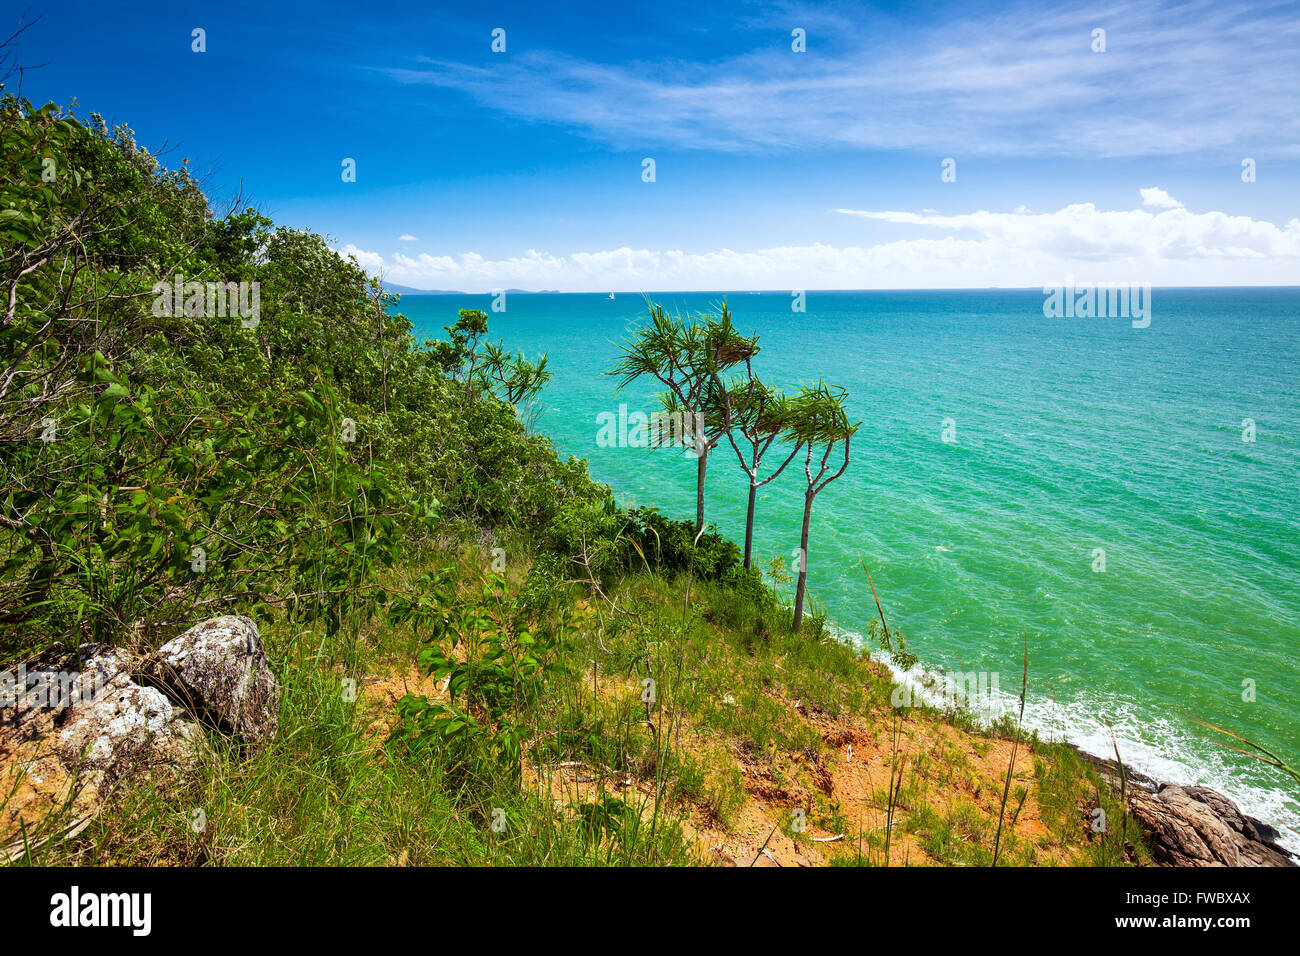 Beach and tropical vegetation from the lookout, Port Douglas, Australia - Stock Image